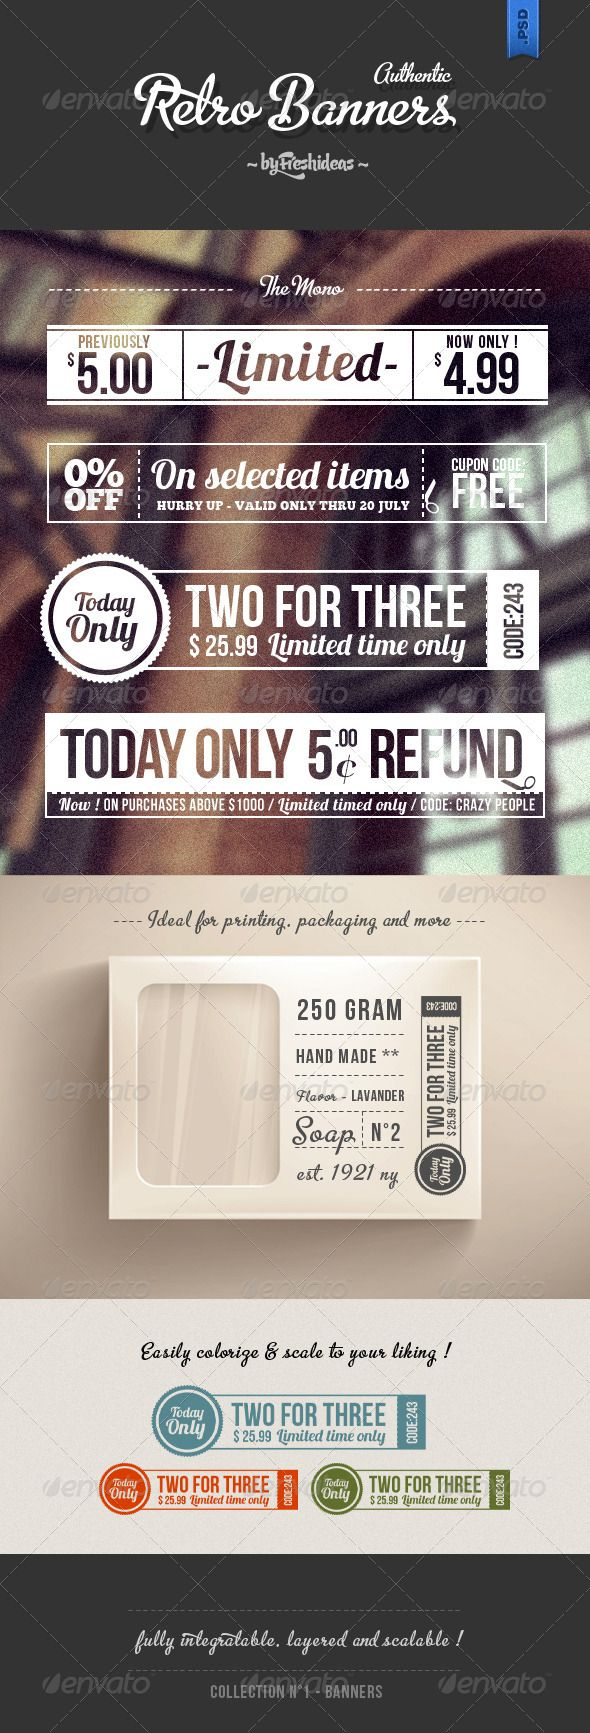 Set of 4 Retro Banners - GraphicRiver Item for Sale